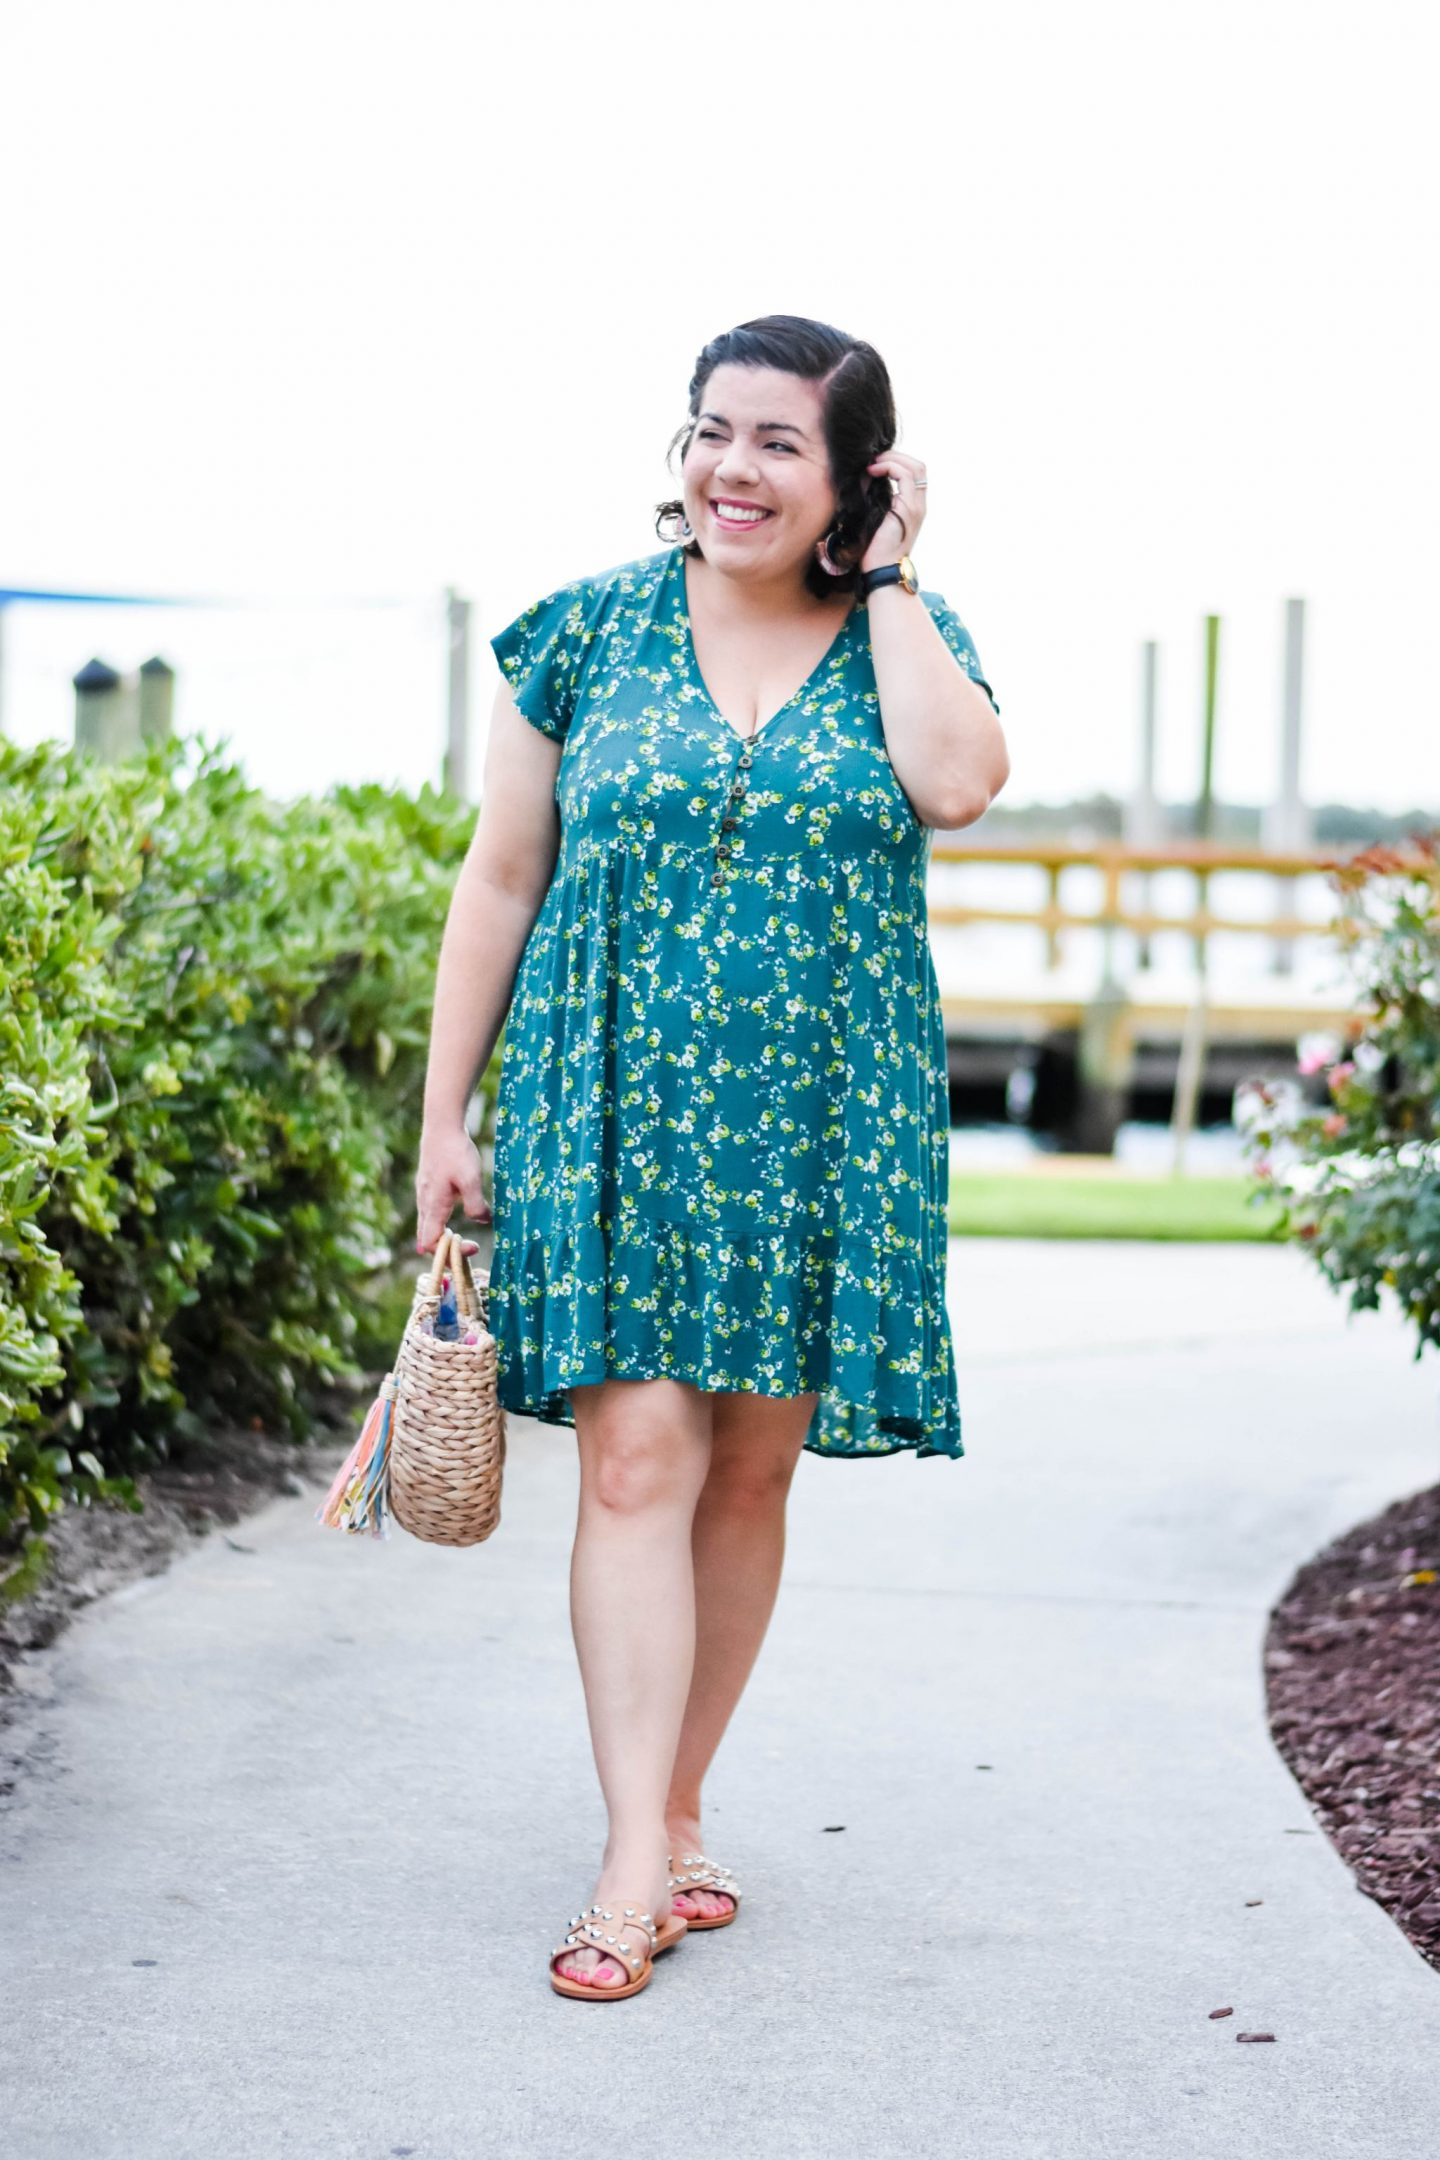 Floral Print Summer Dress-@headtotoechic-Head to Toe Chic